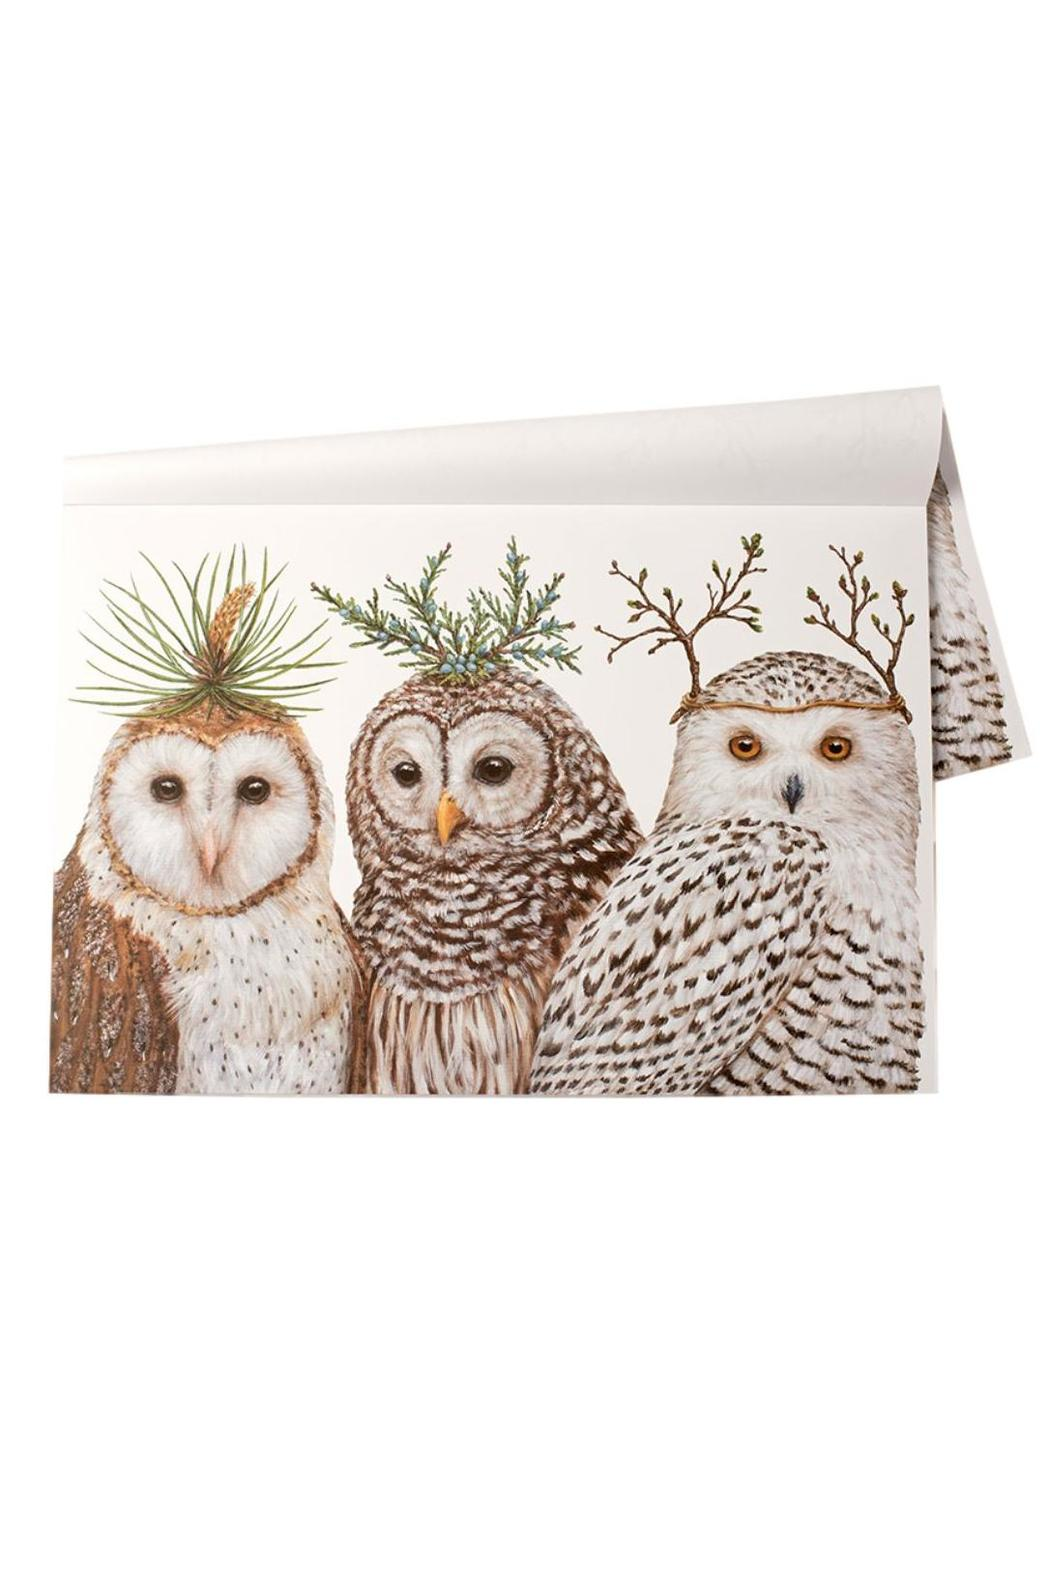 Castles Home Decor Winter Owl Placemats From Denver